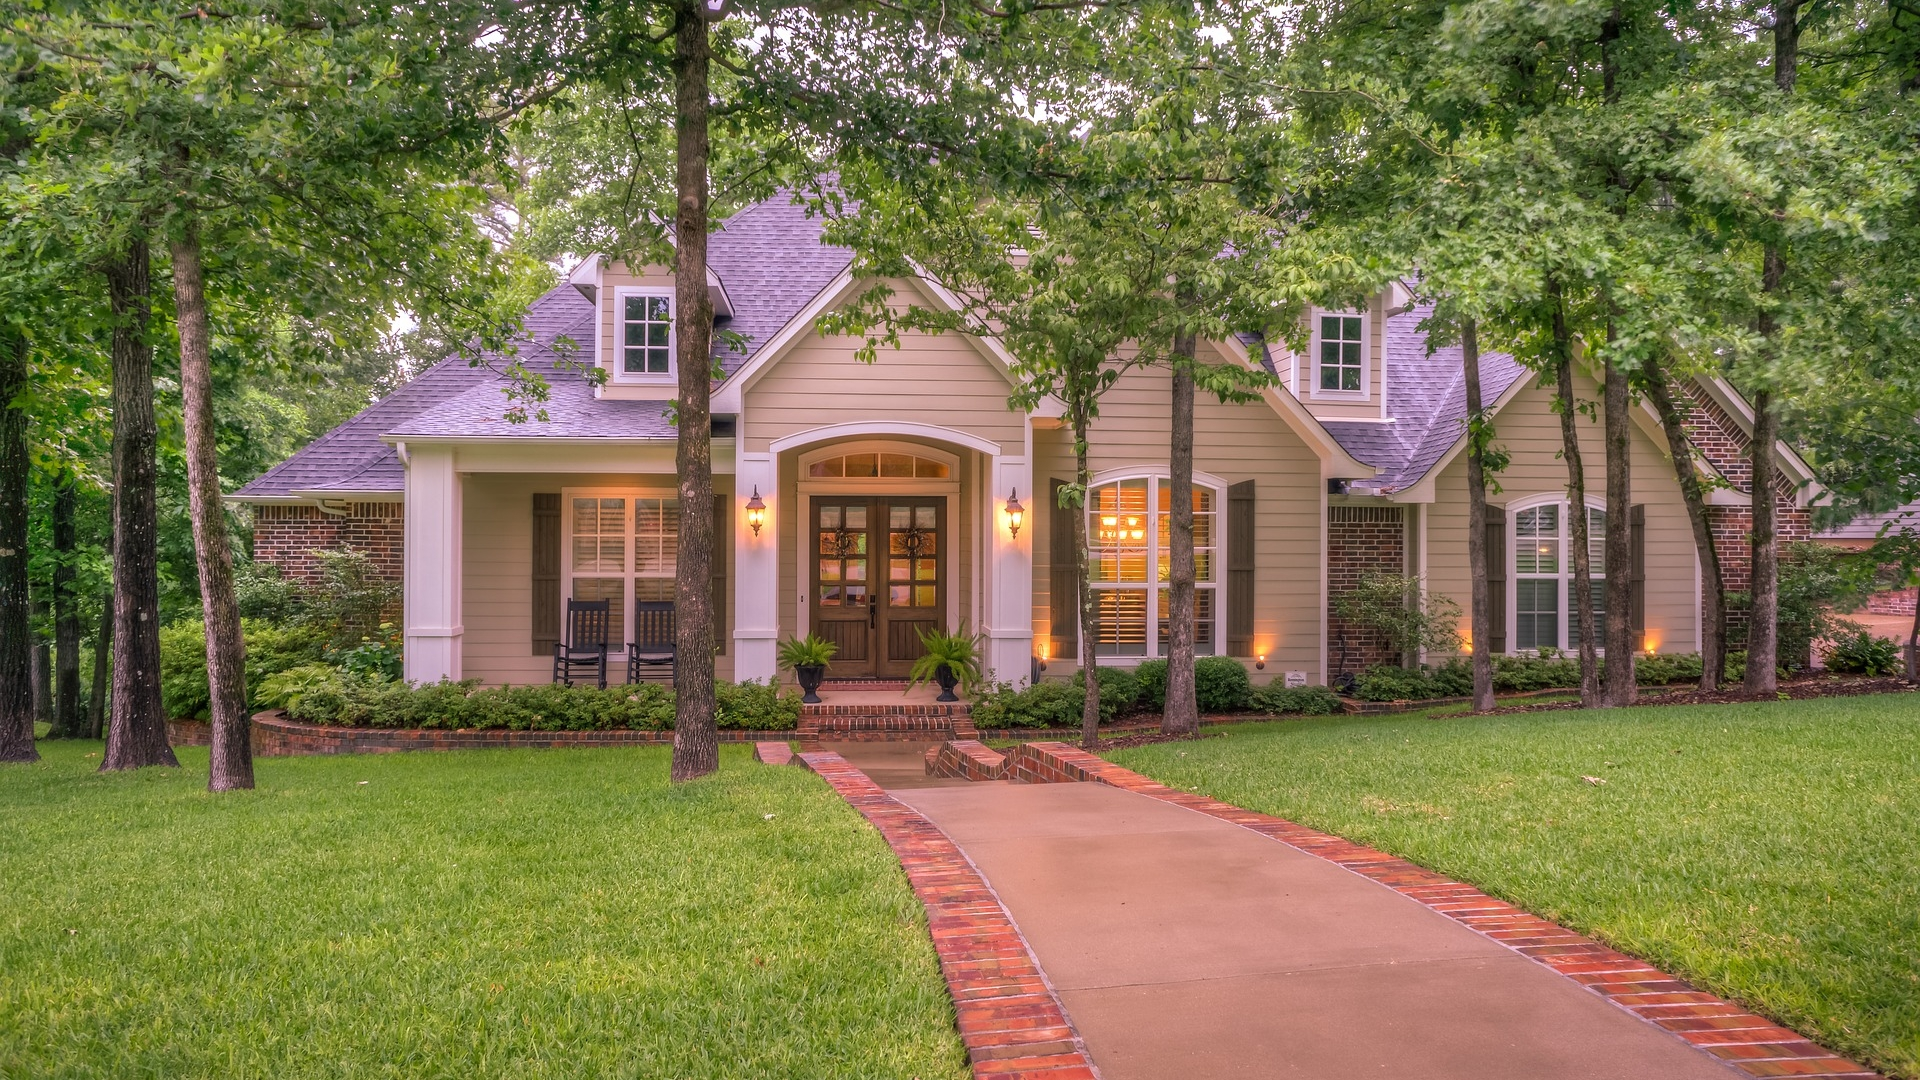 House with synthetic turf front yard lawn pavers bricks